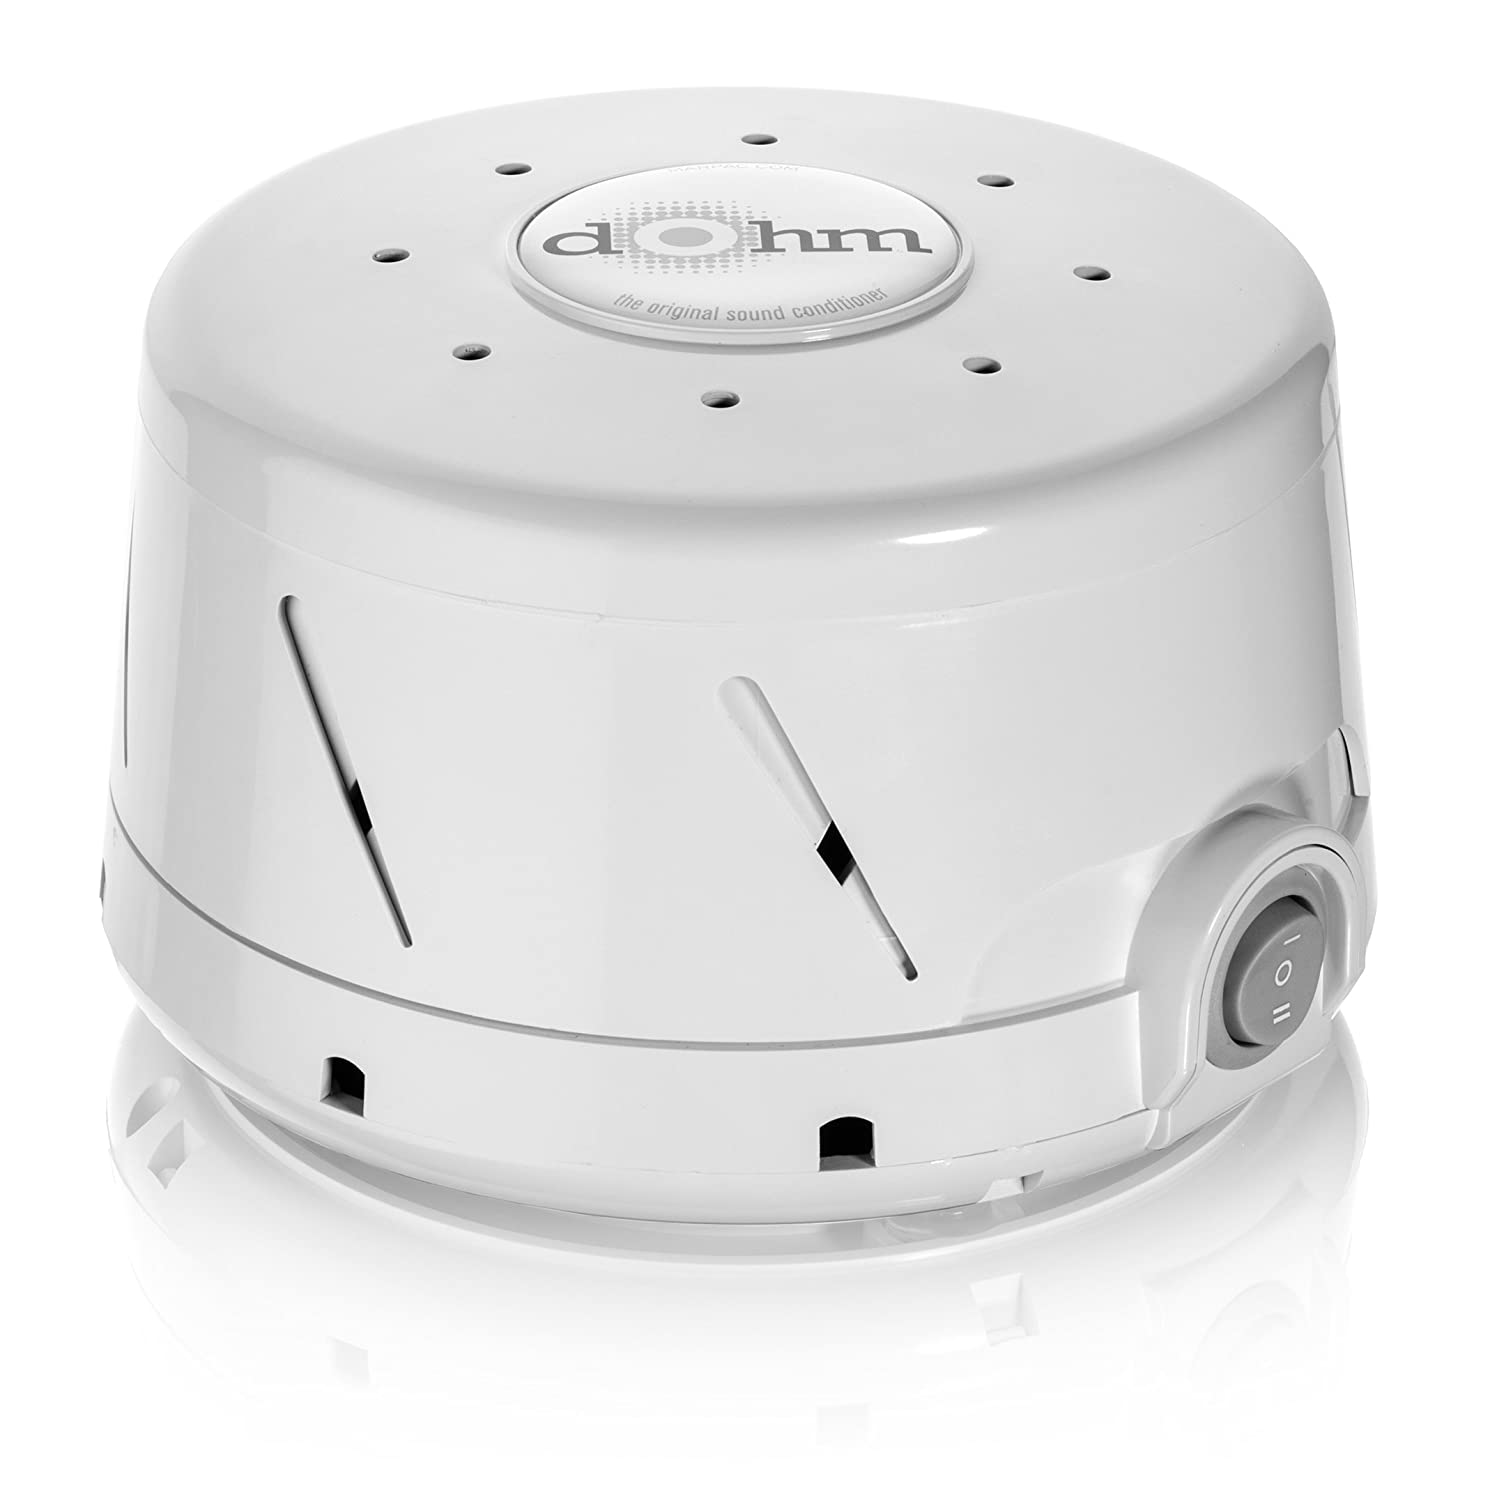 dohm sleep machine